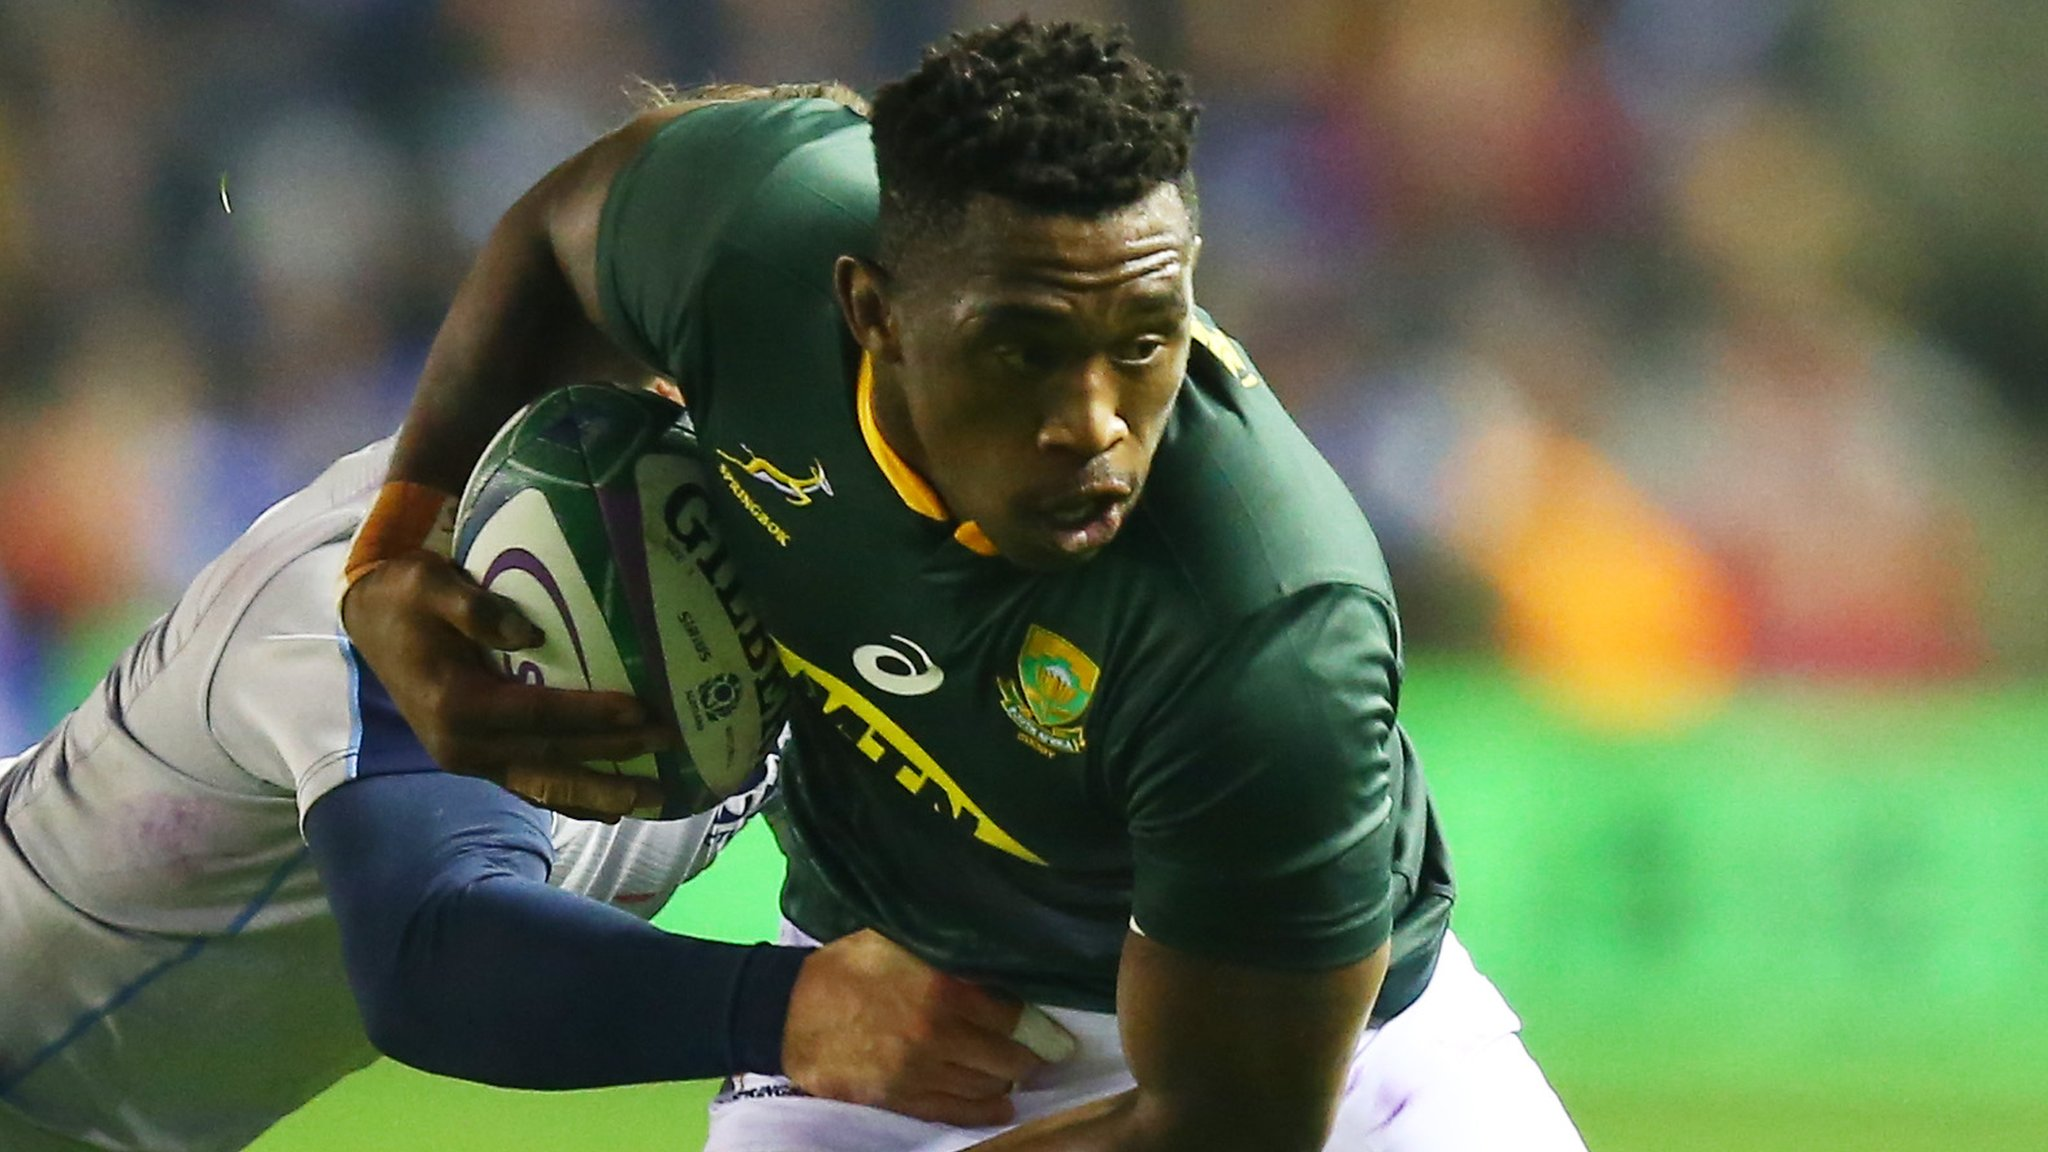 Siya Kolisi: You question what the TMO is doing - Stuart Hogg on headbutt incident